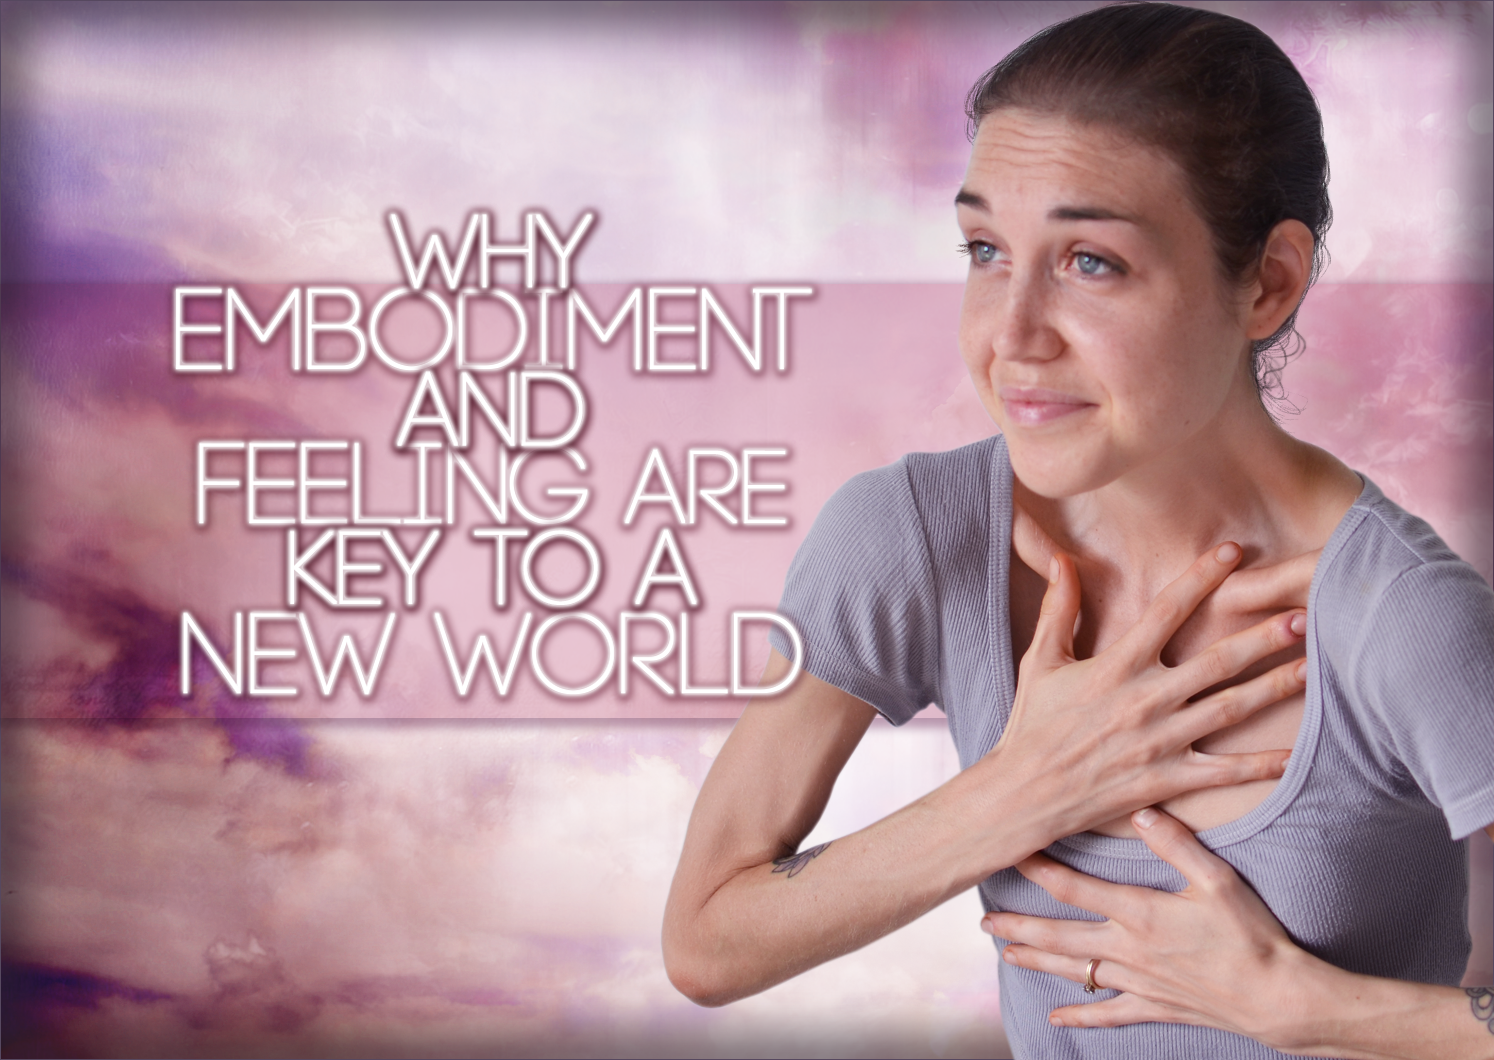 Why Embodiment And Feeling Are KEY To A New World